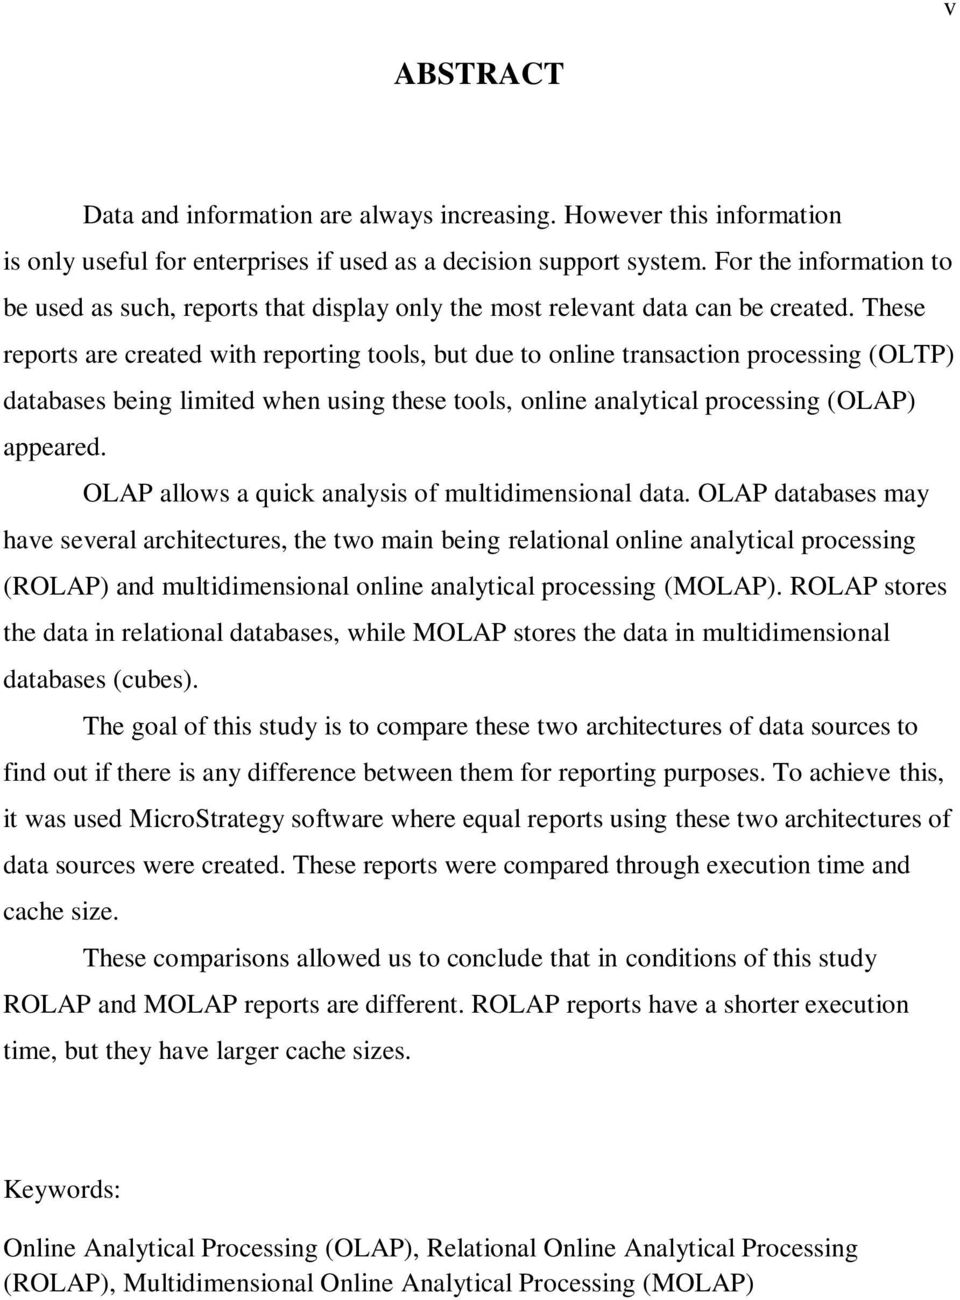 These reports are created with reporting tools, but due to online transaction processing (OLTP) databases being limited when using these tools, online analytical processing (OLAP) appeared.